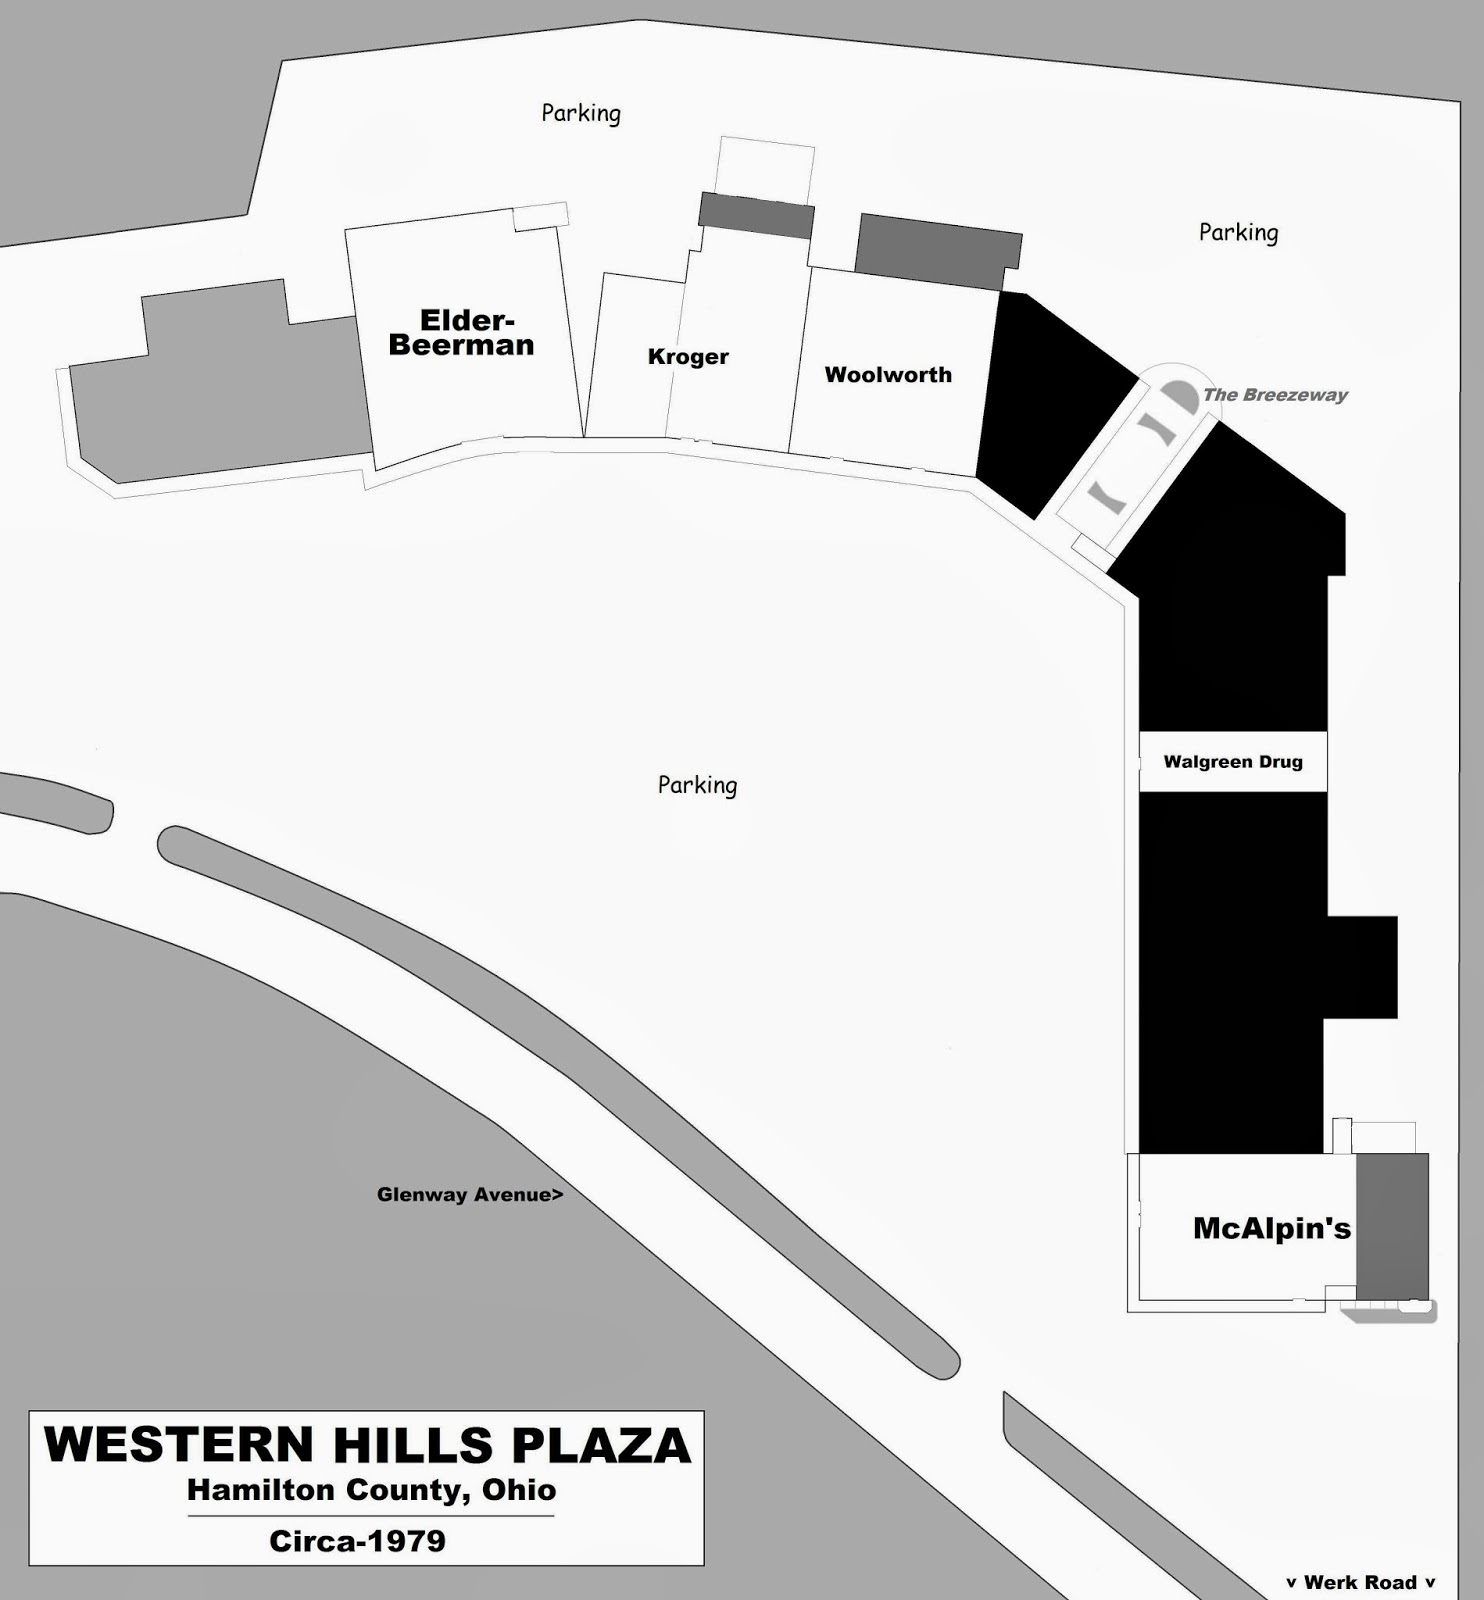 mall hall of fame by 1979 three stores in western hills plaza had been enlarged shown in dark gray moreover mabley carew was sporting a new plate that of